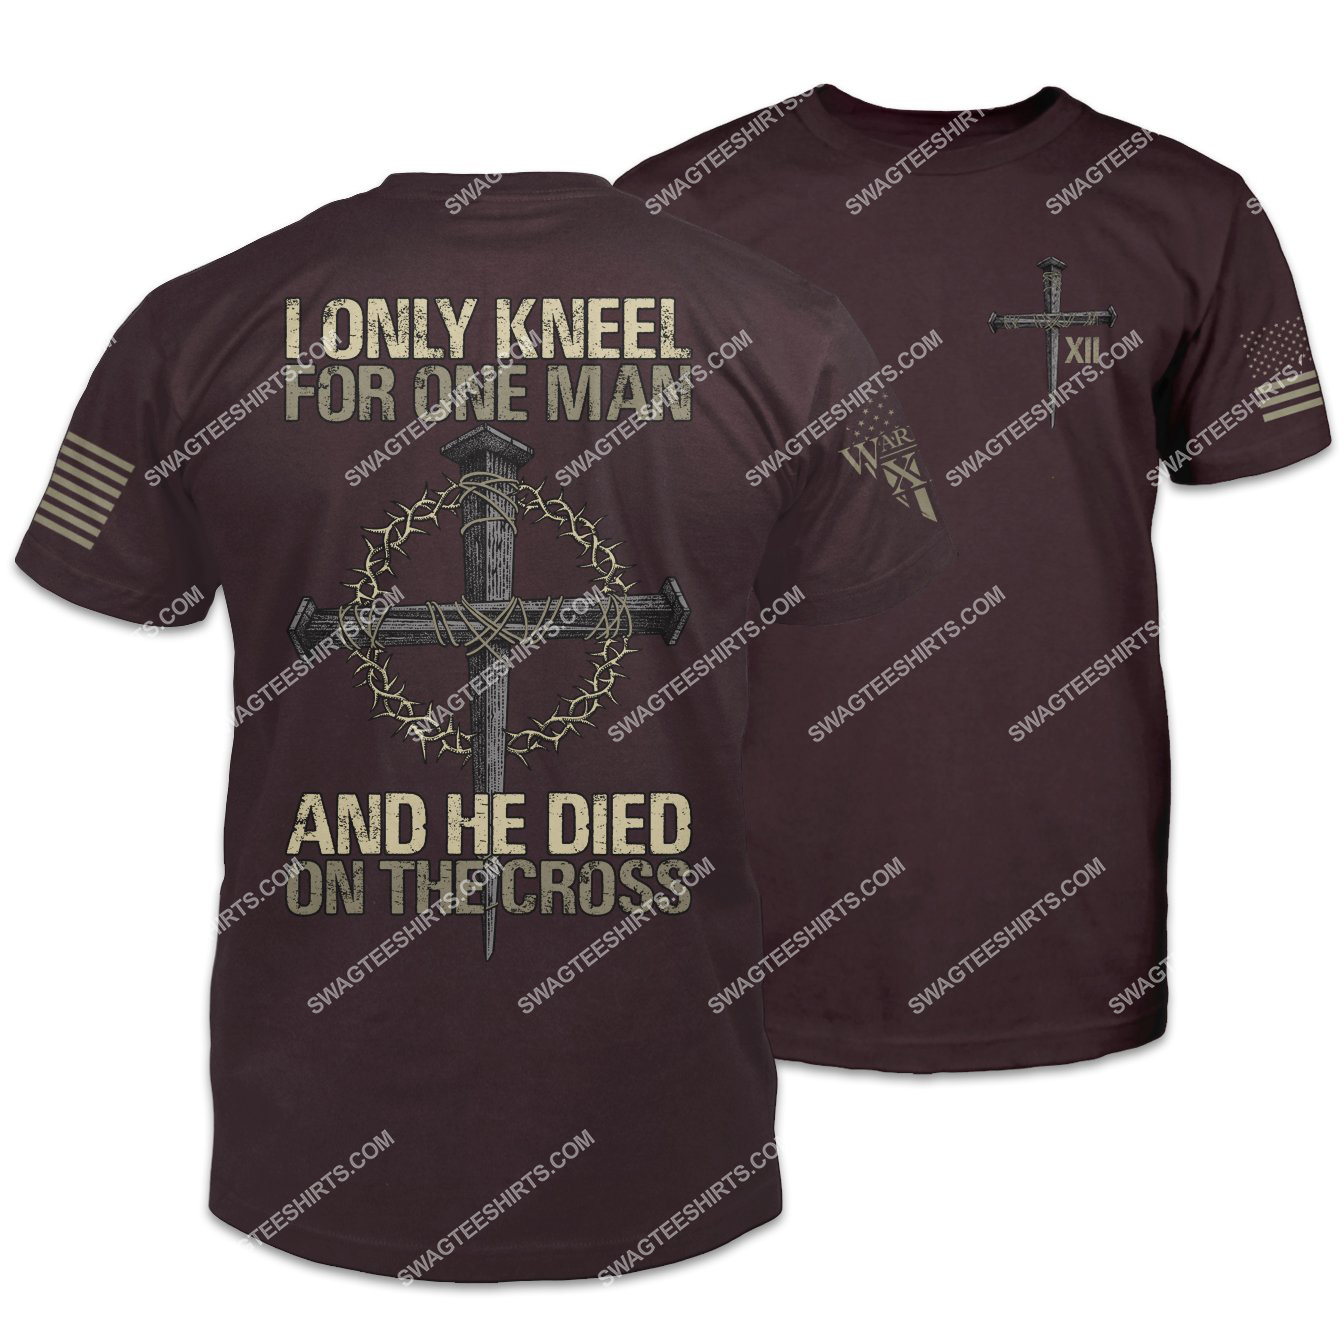 we only kneel for one man and he died on the cross shirt 1 - Copy (2)